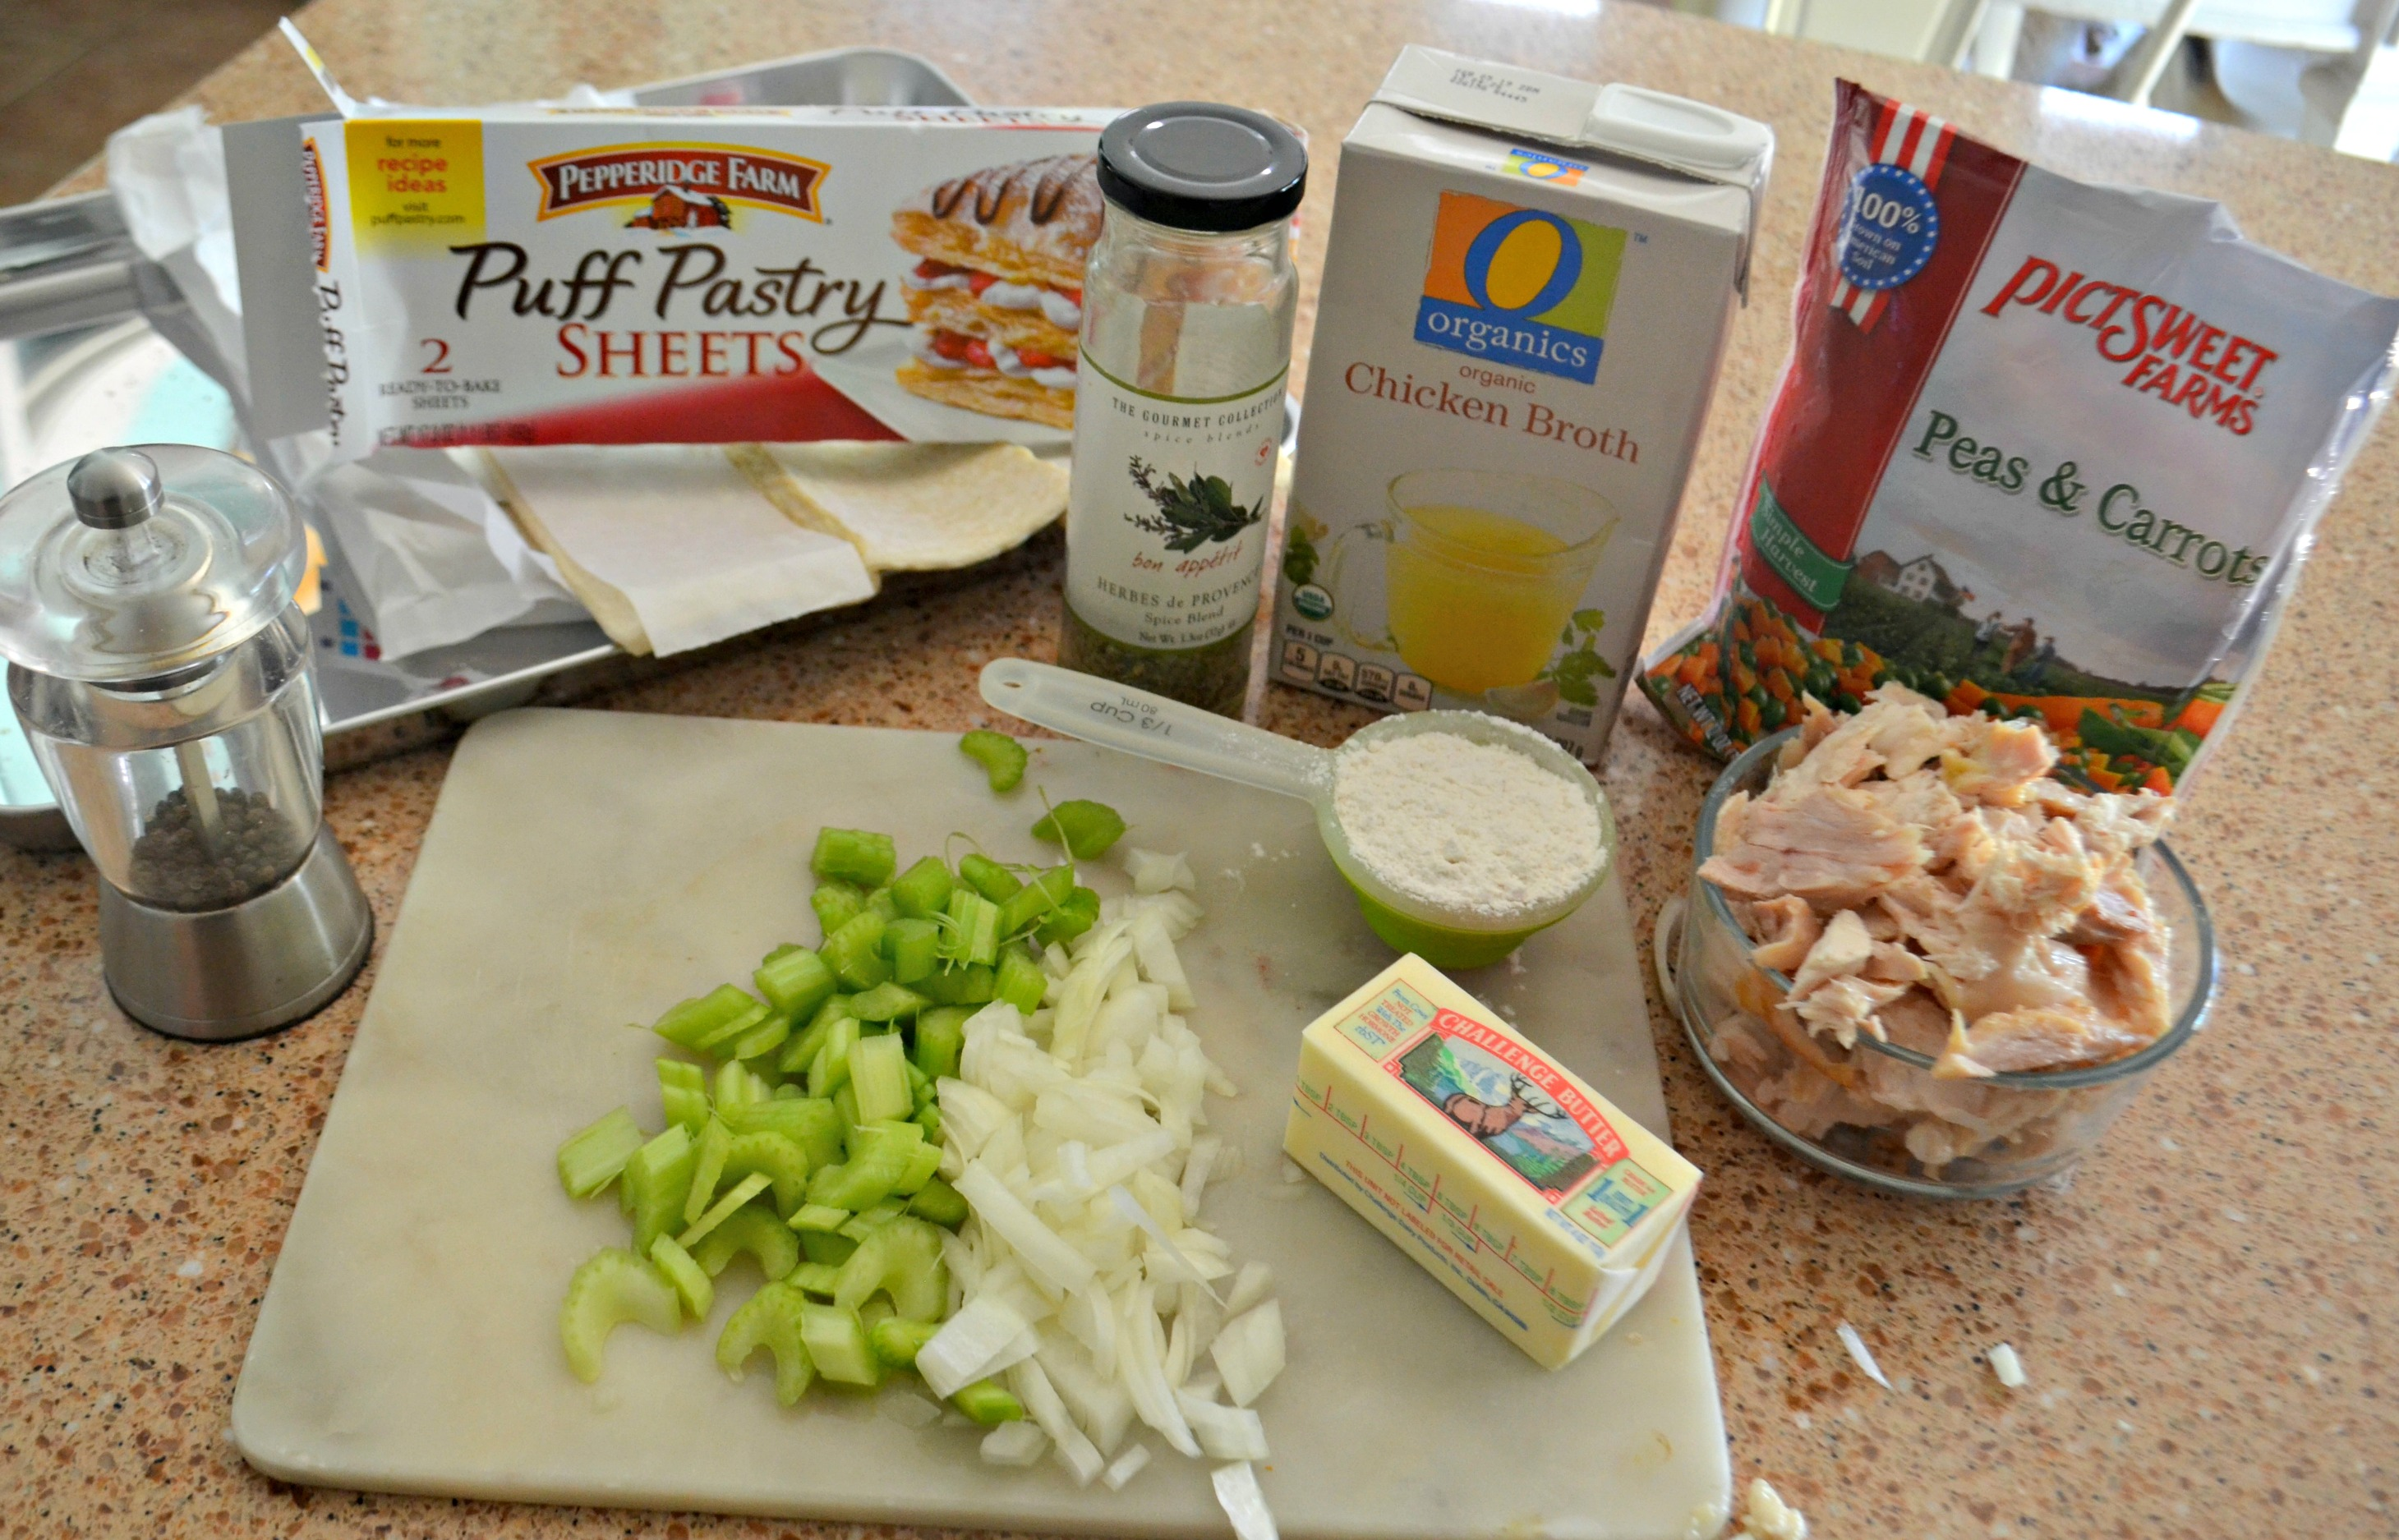 Sheet Pan Chicken Pot Pie - the ingredients on the counter